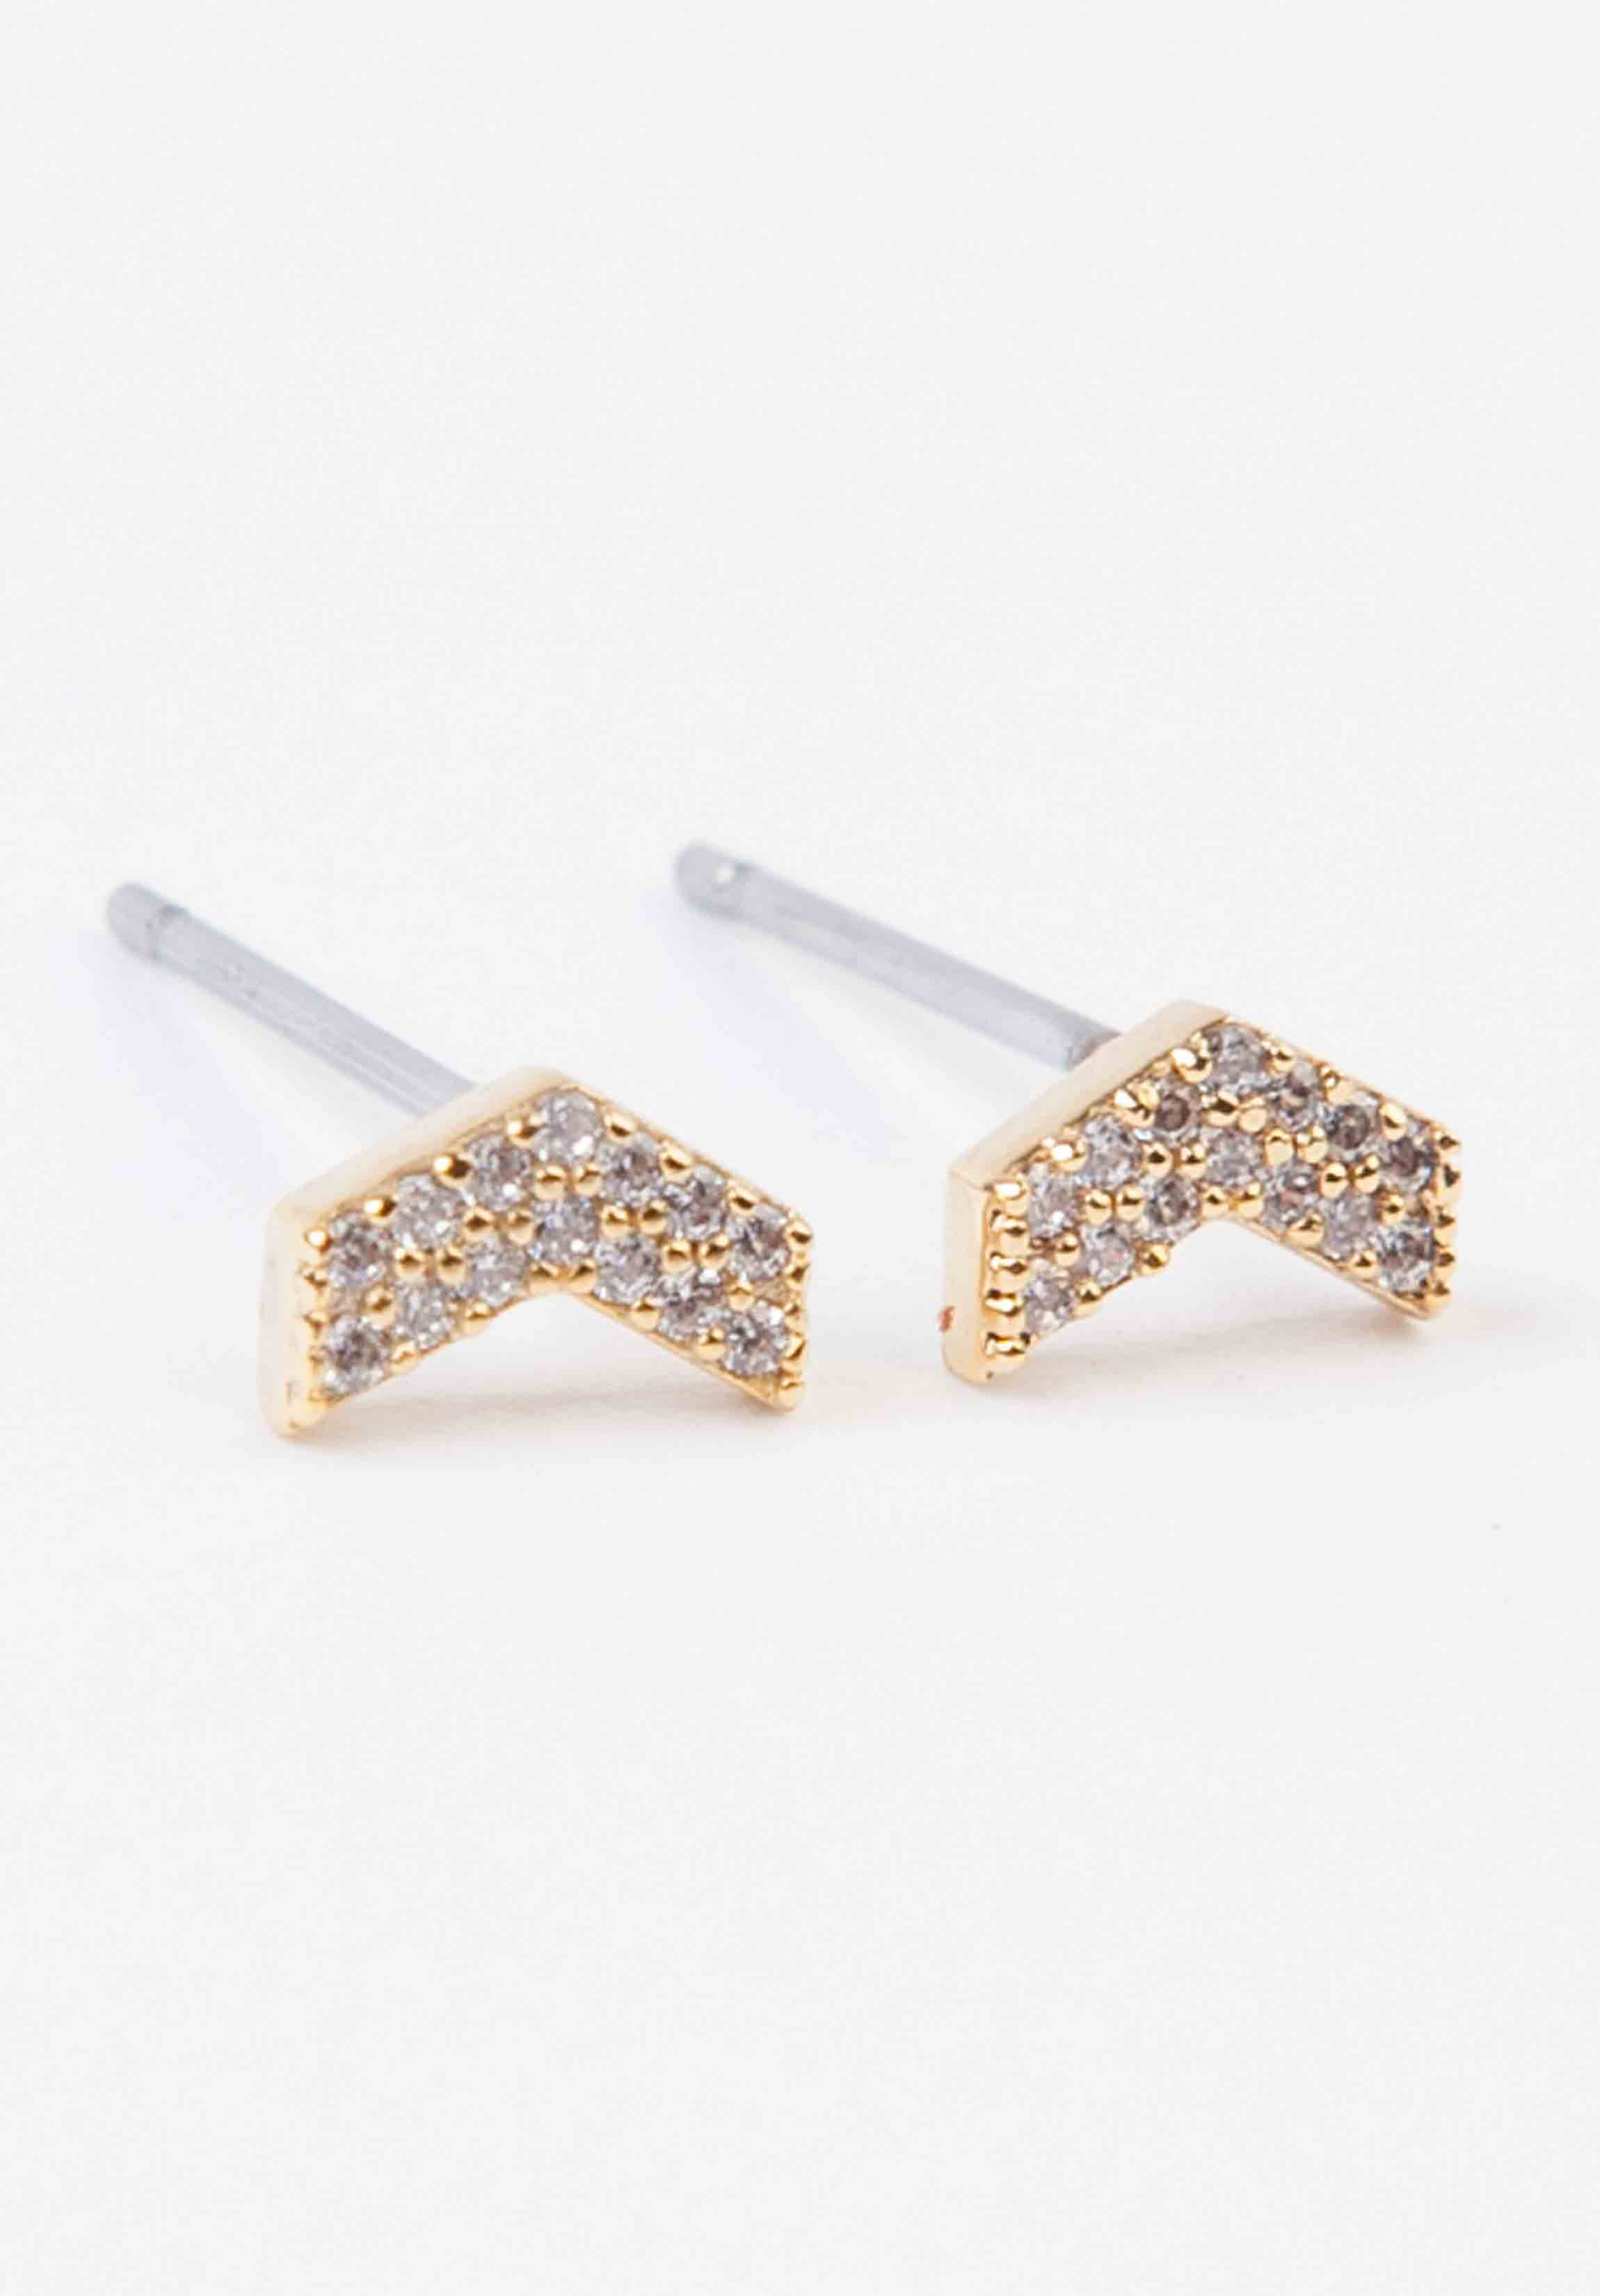 STUDDED TINY ARROW EARRINGS | GOLD